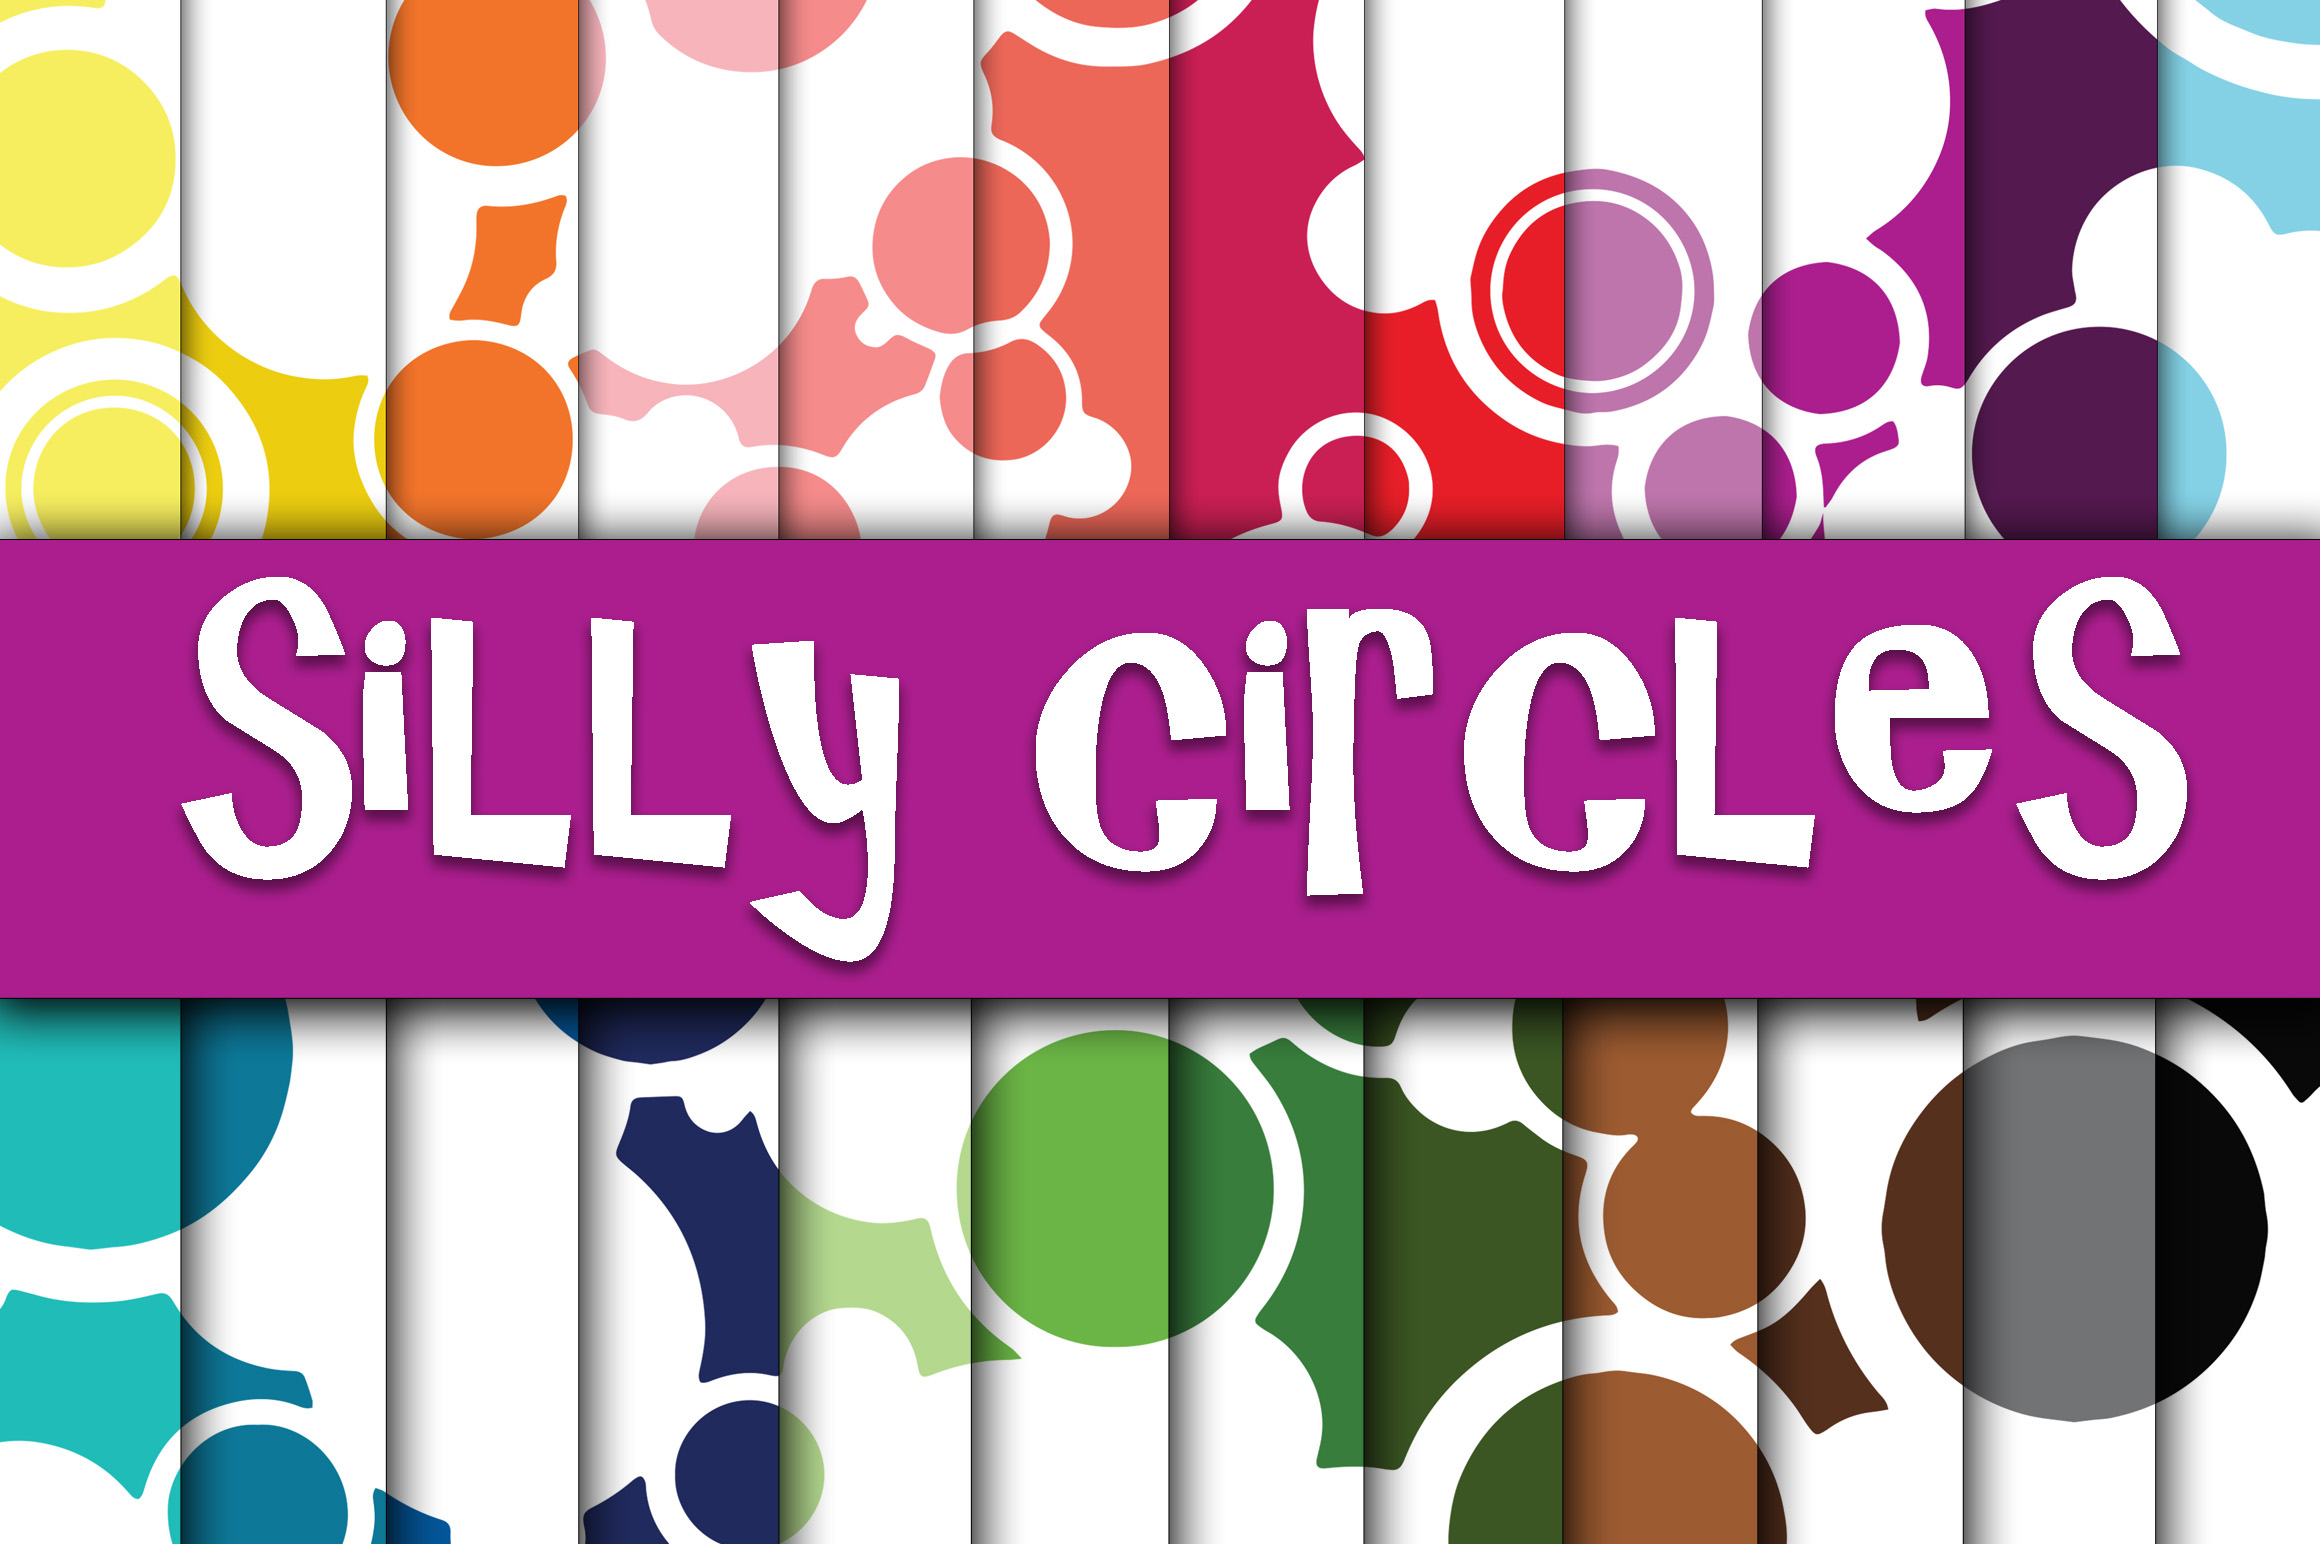 Silly Circles Digital Paper Graphic Backgrounds By oldmarketdesigns